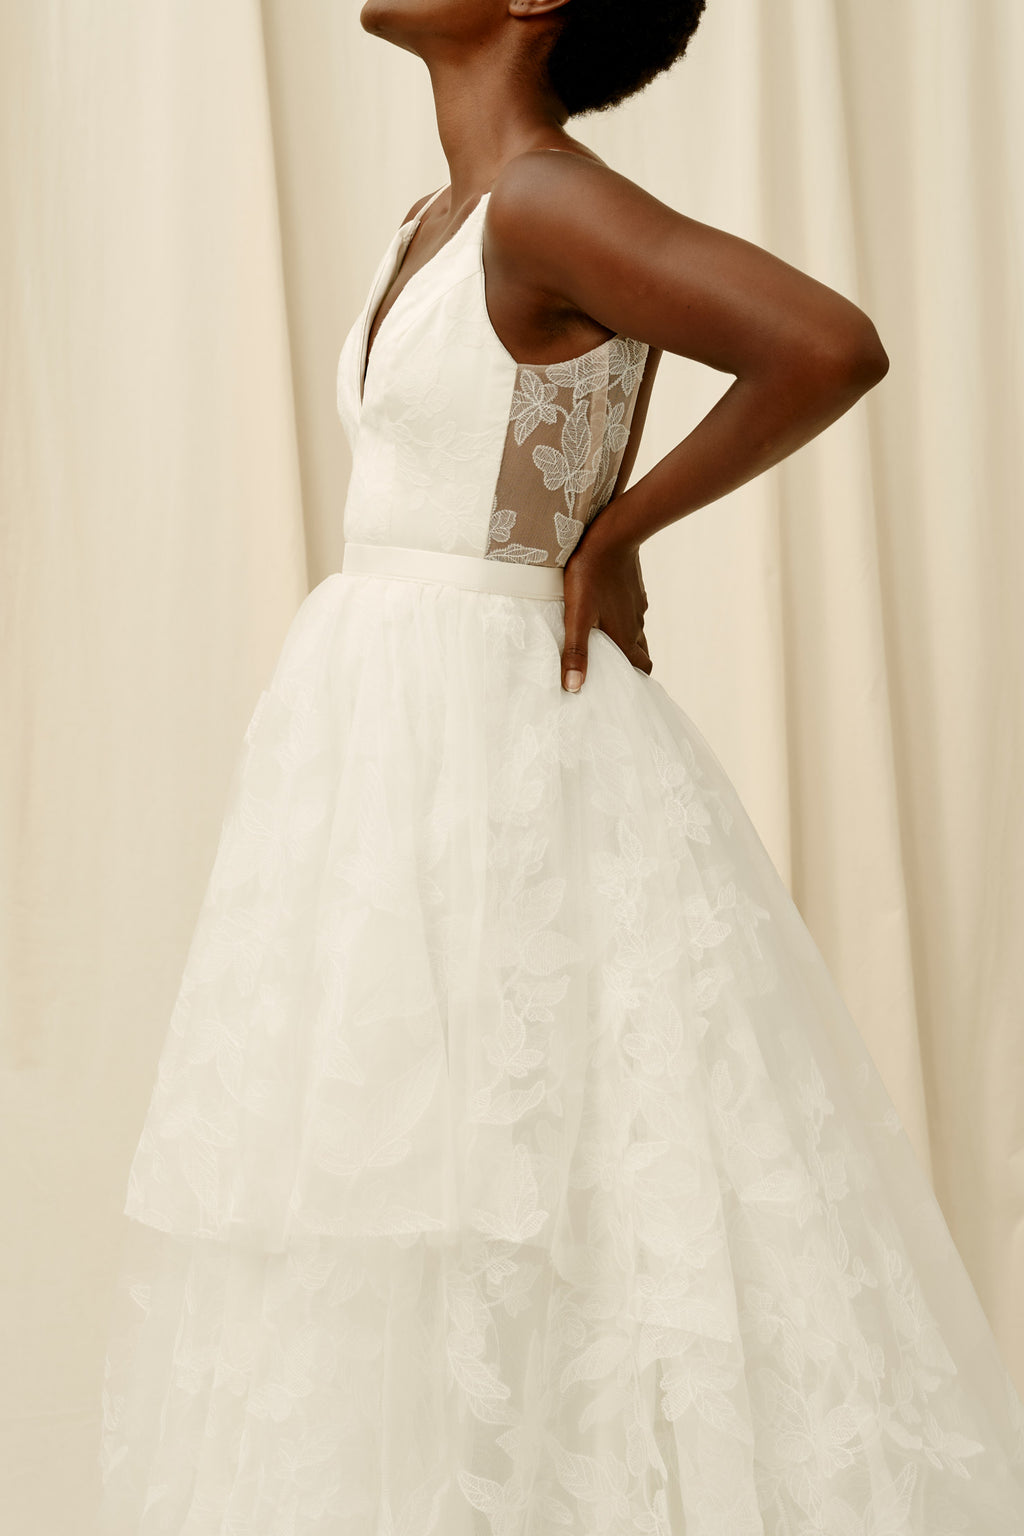 Wedding dress shops in Calgary AB